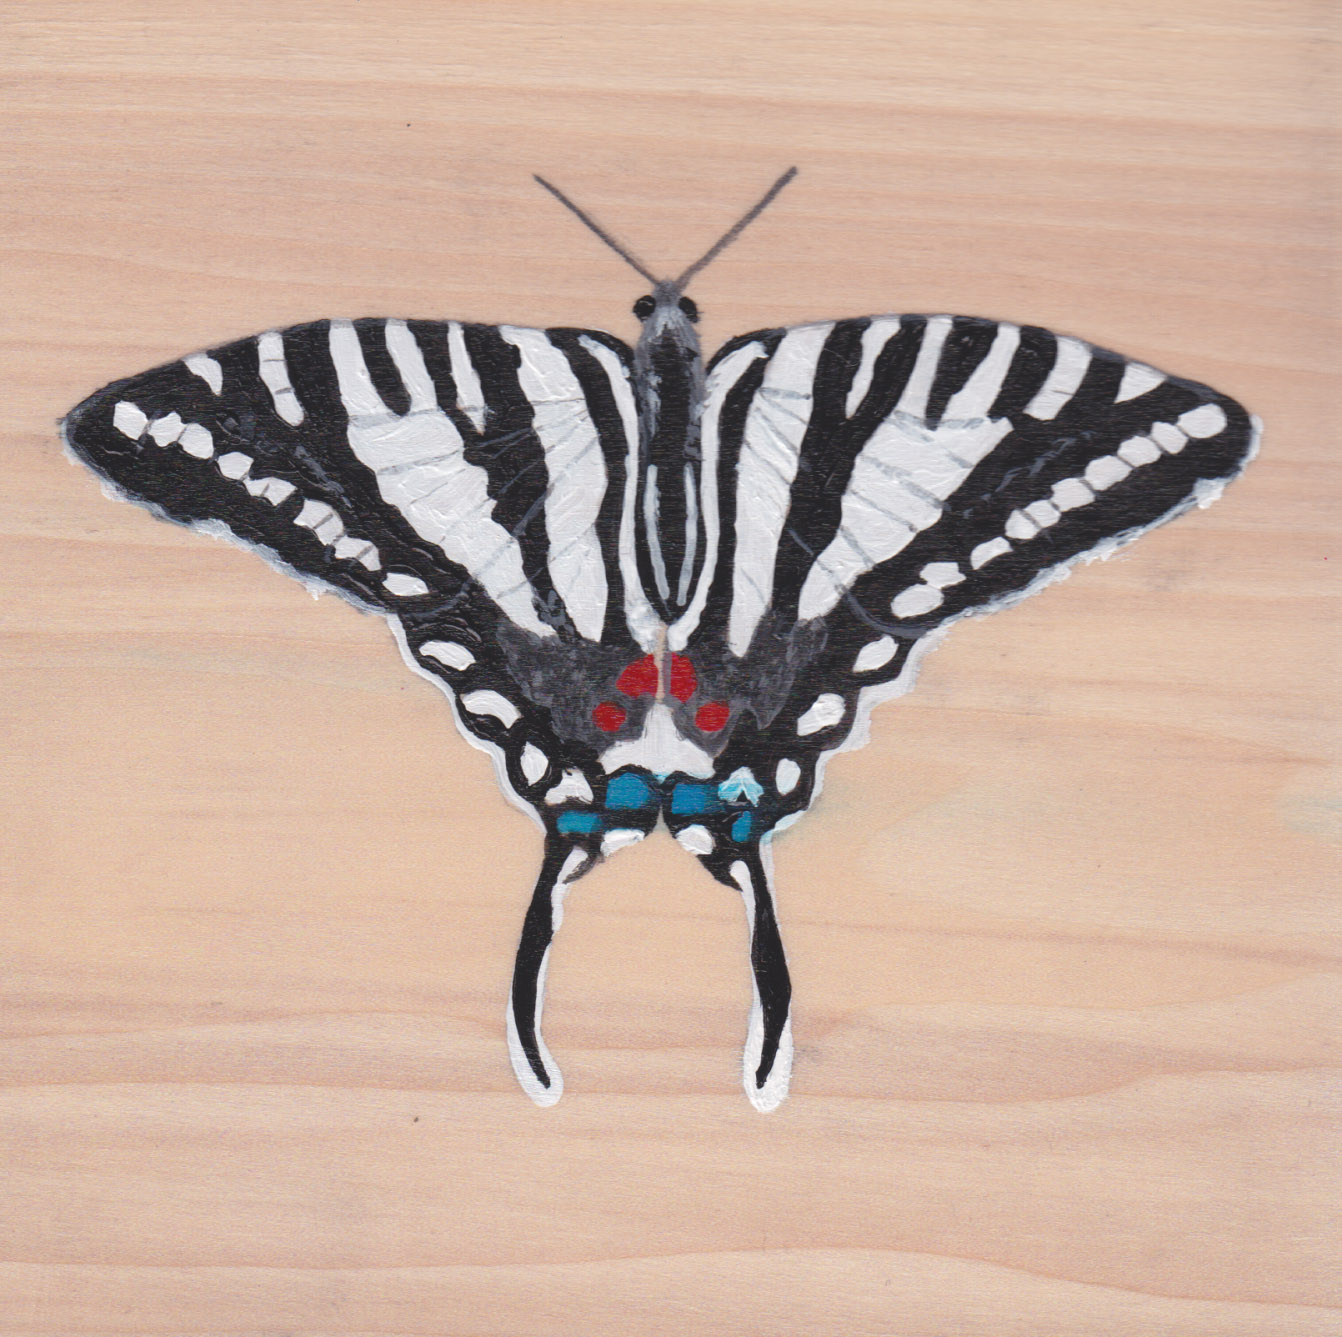 Protographium Marcellus Butterfly_Painting on wood_01.jpg